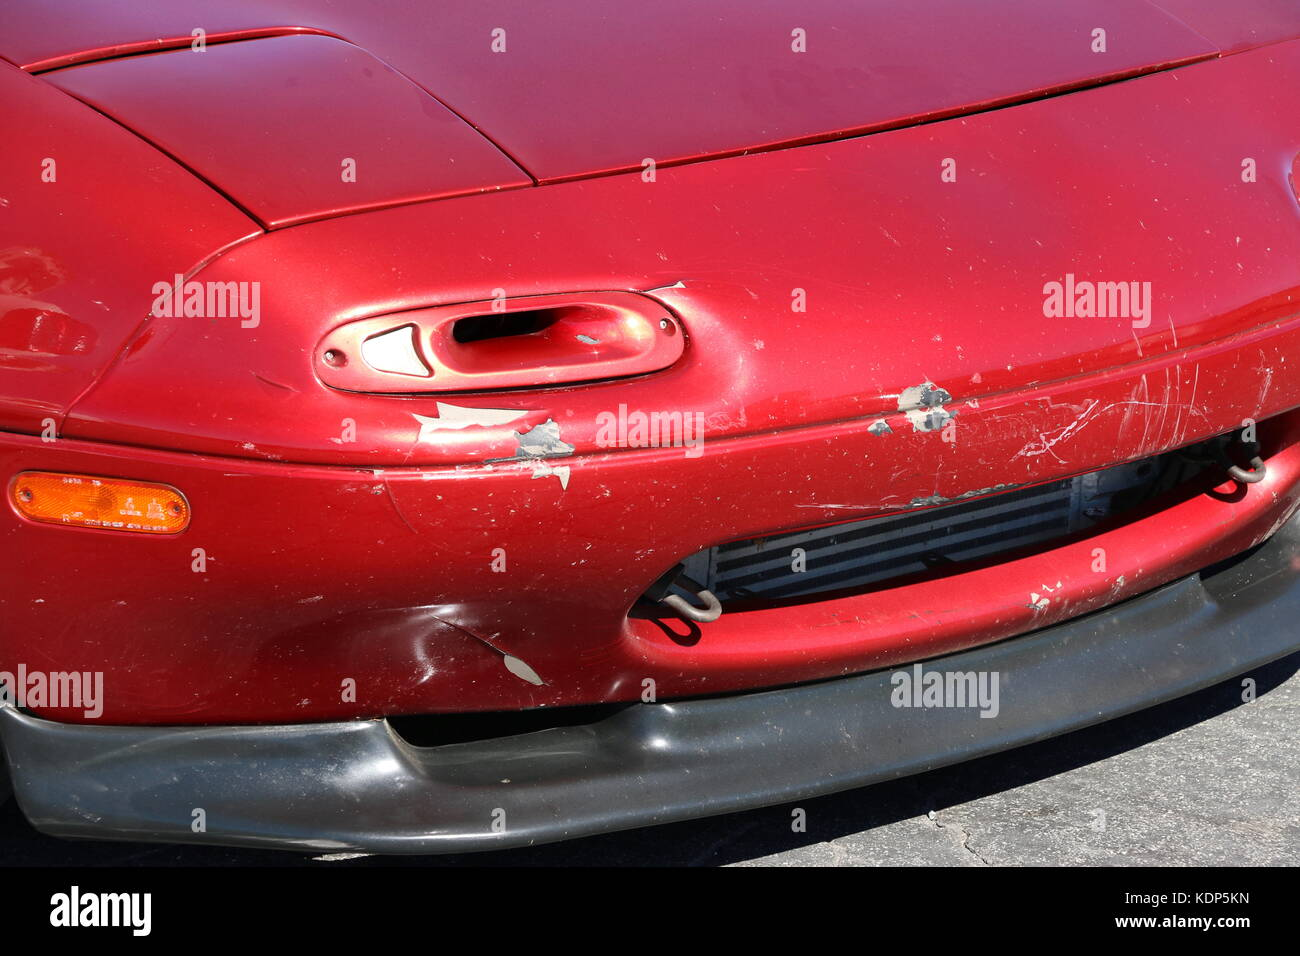 hight resolution of unusual turn signal on an old red car with fender in need of repair